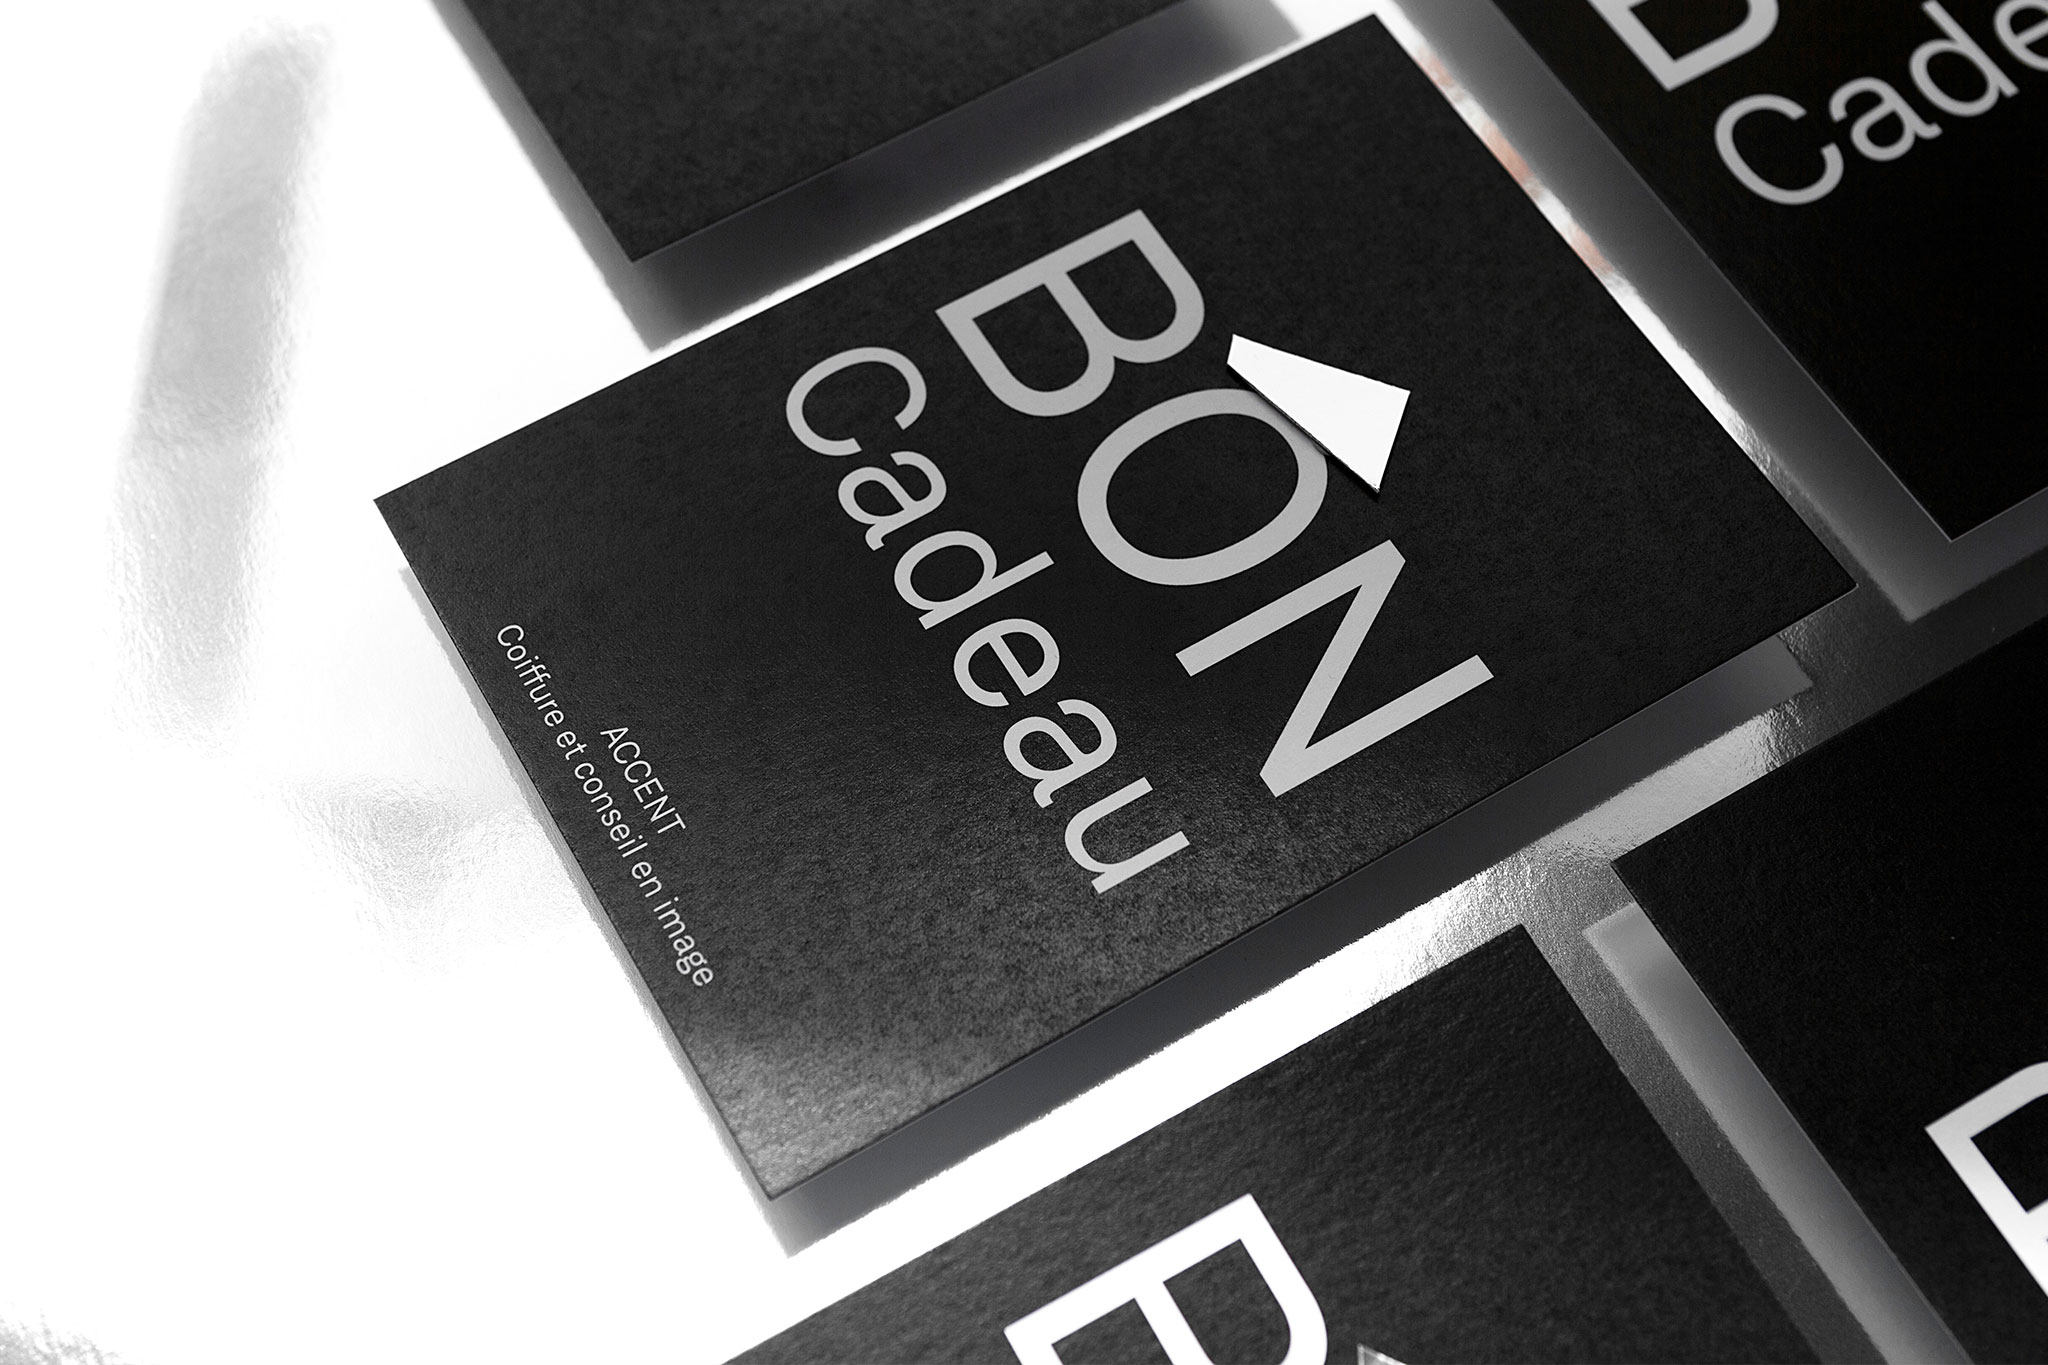 Accent Gift cards